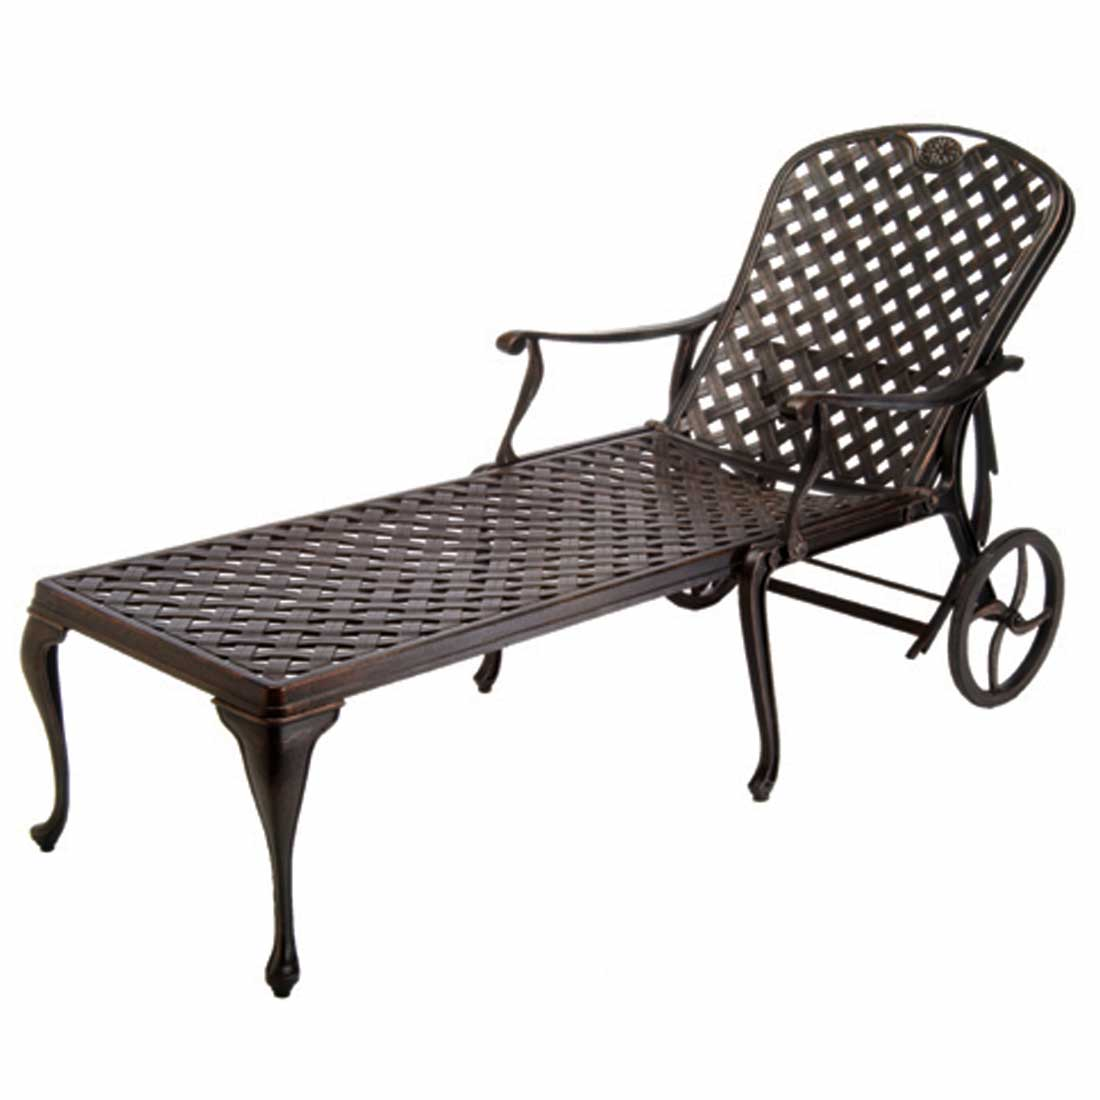 Provance Metal Chaise Lounge Chairs